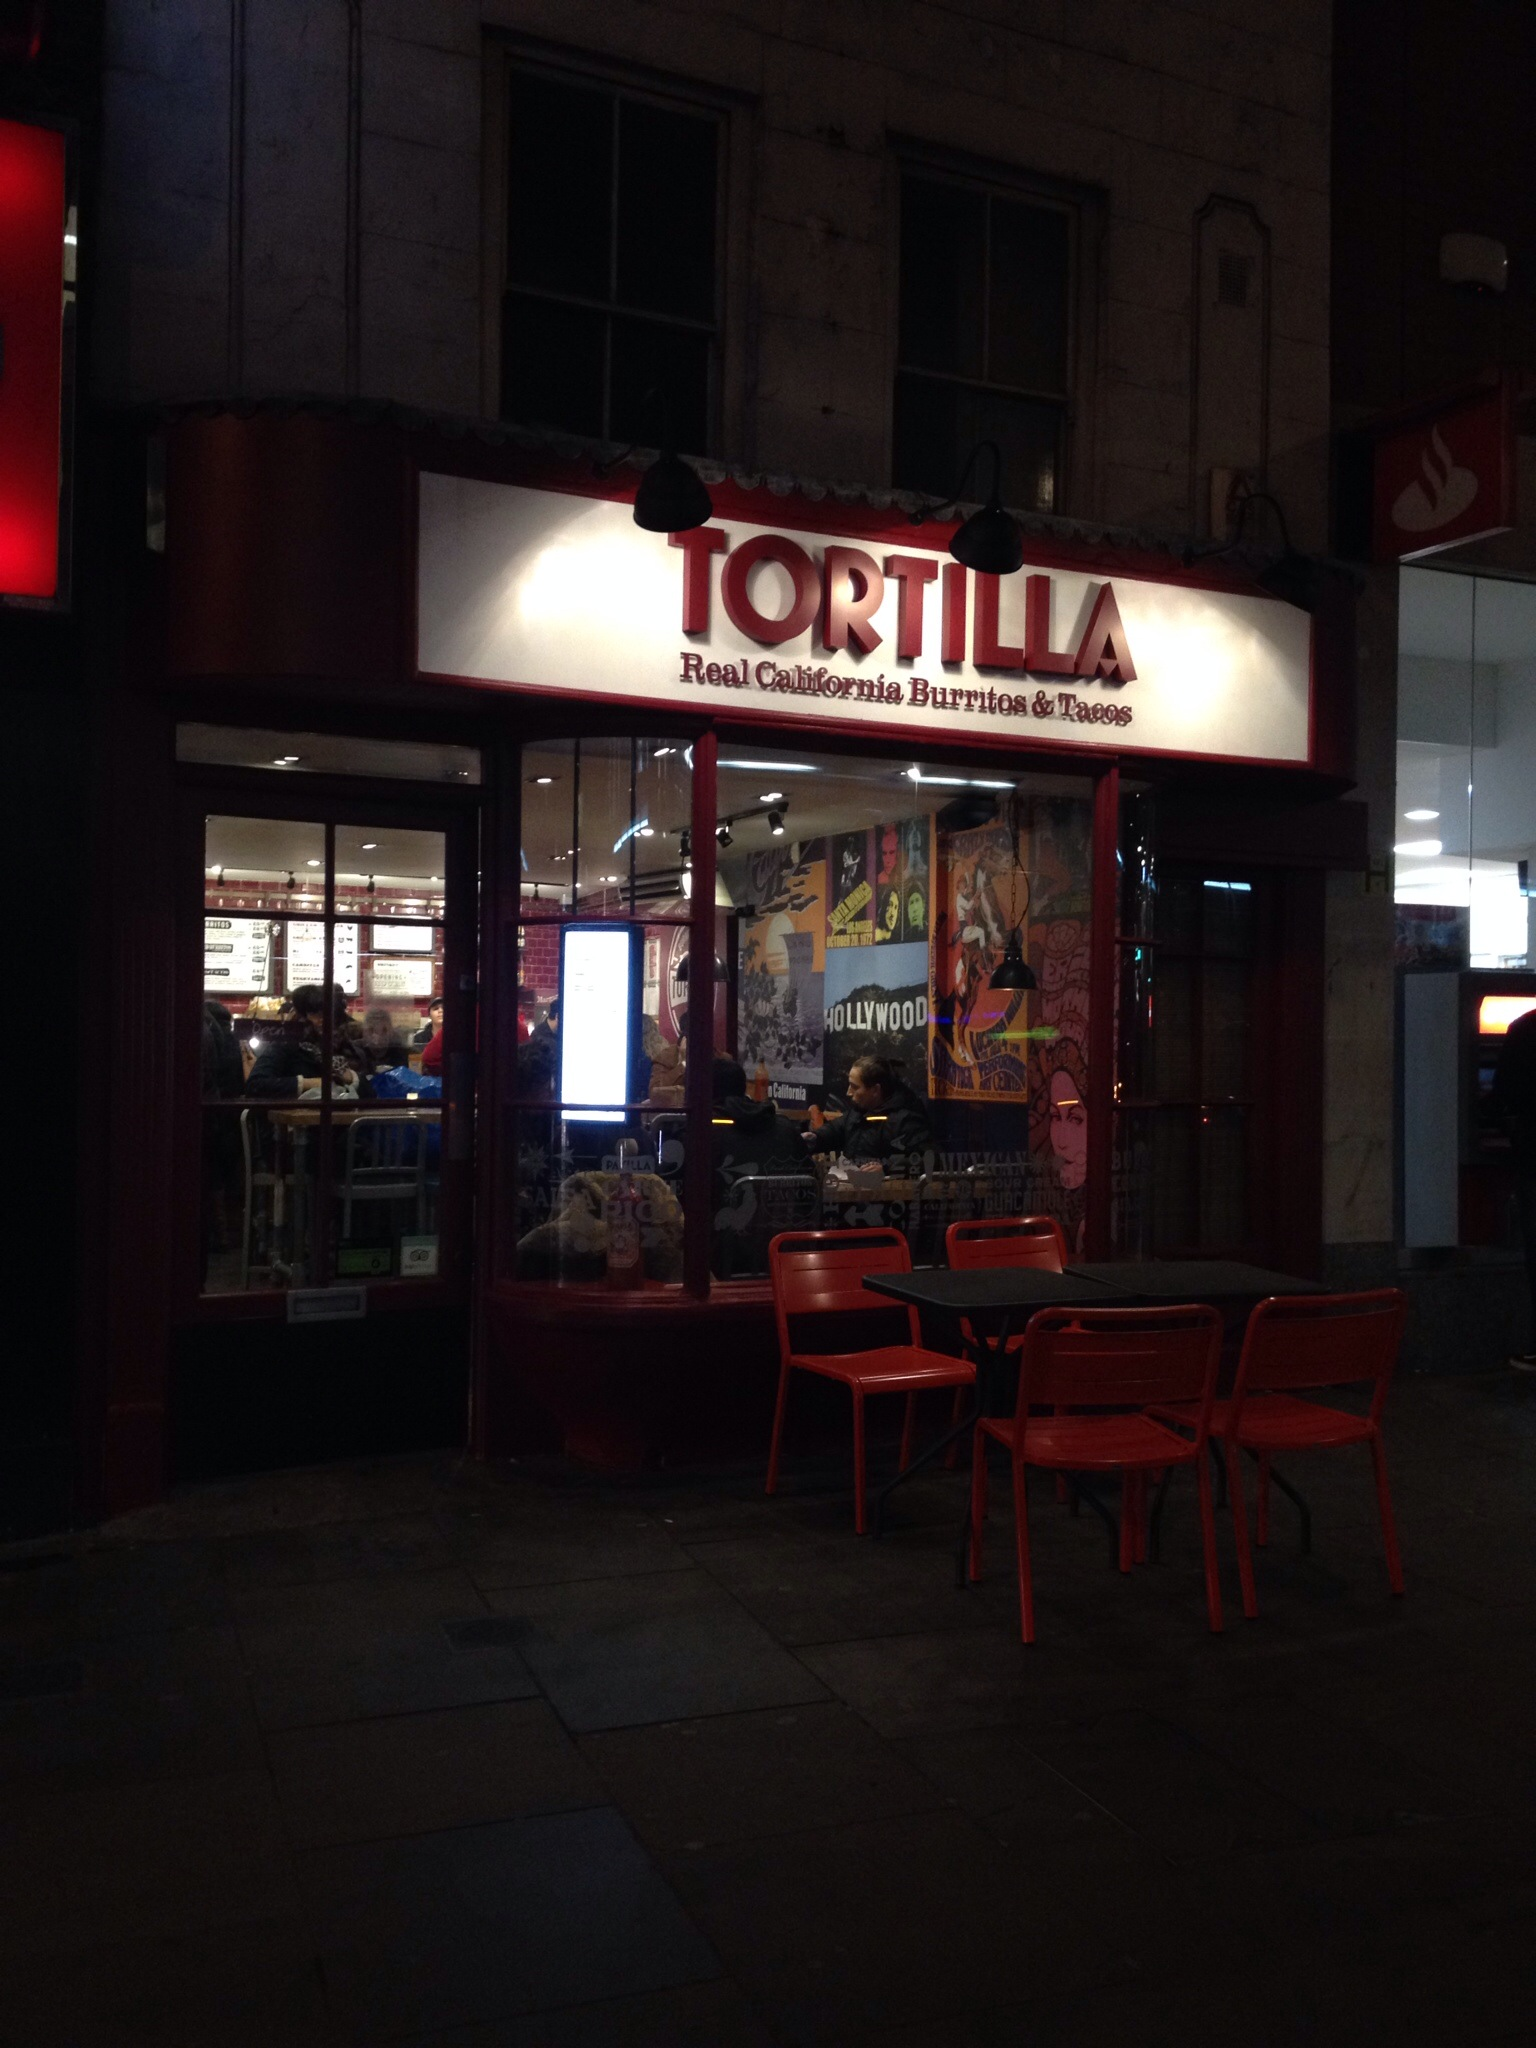 Have you ever tried Tortilla?